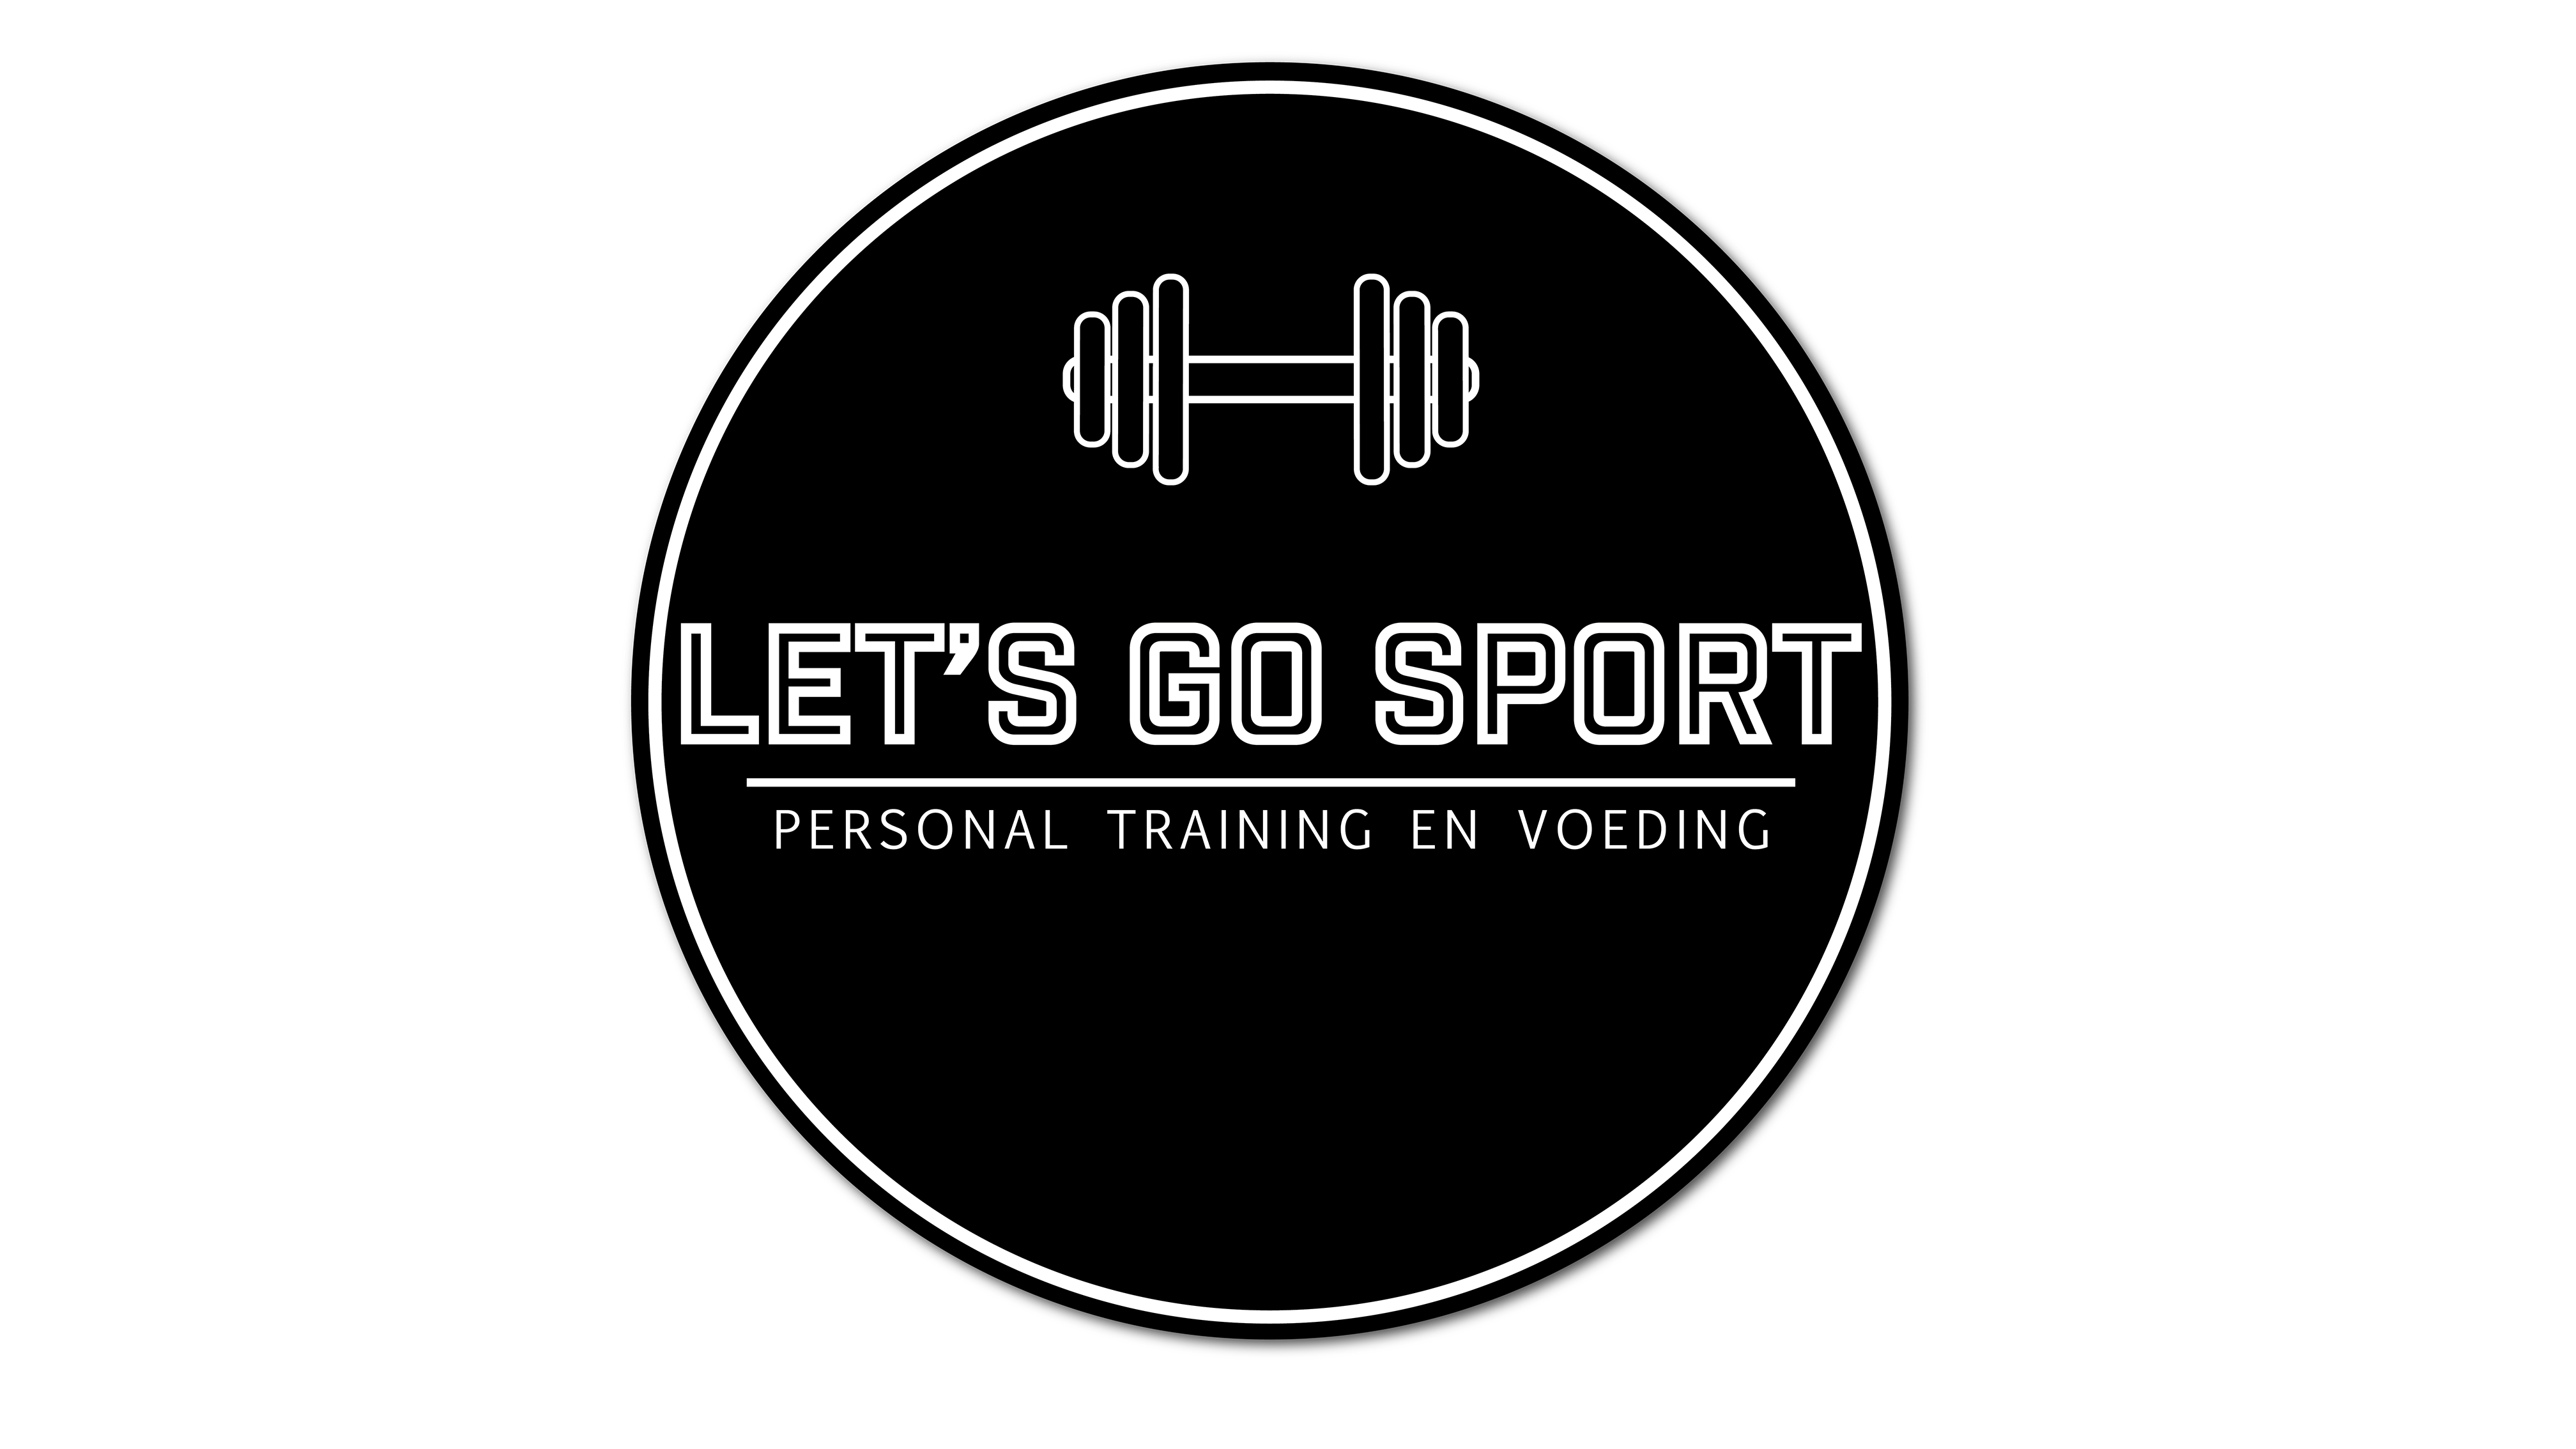 lets go sport